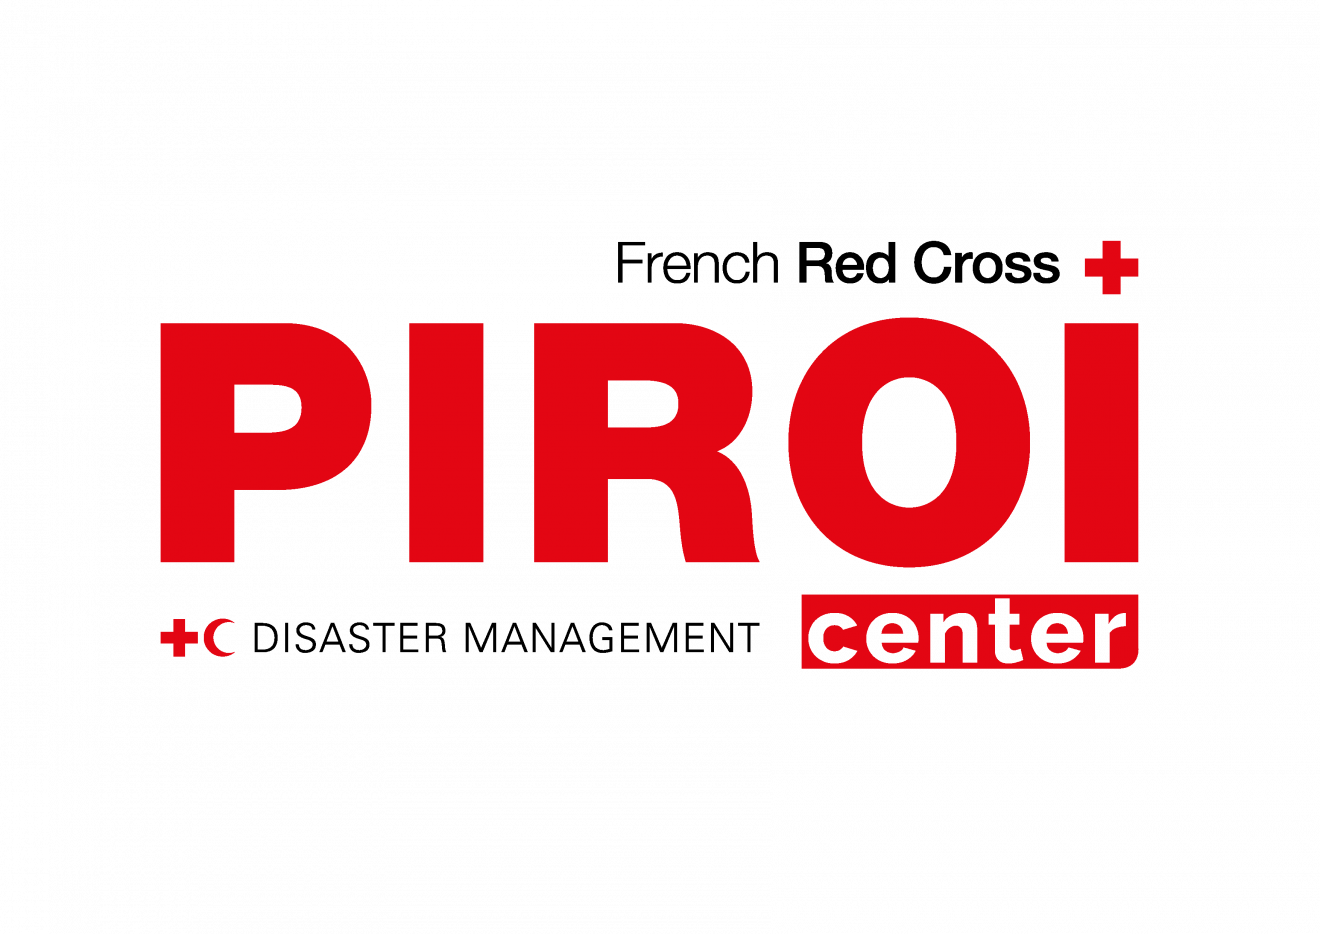 PIROI_CENTER_LOGO_PIROI_GB_POSITIF